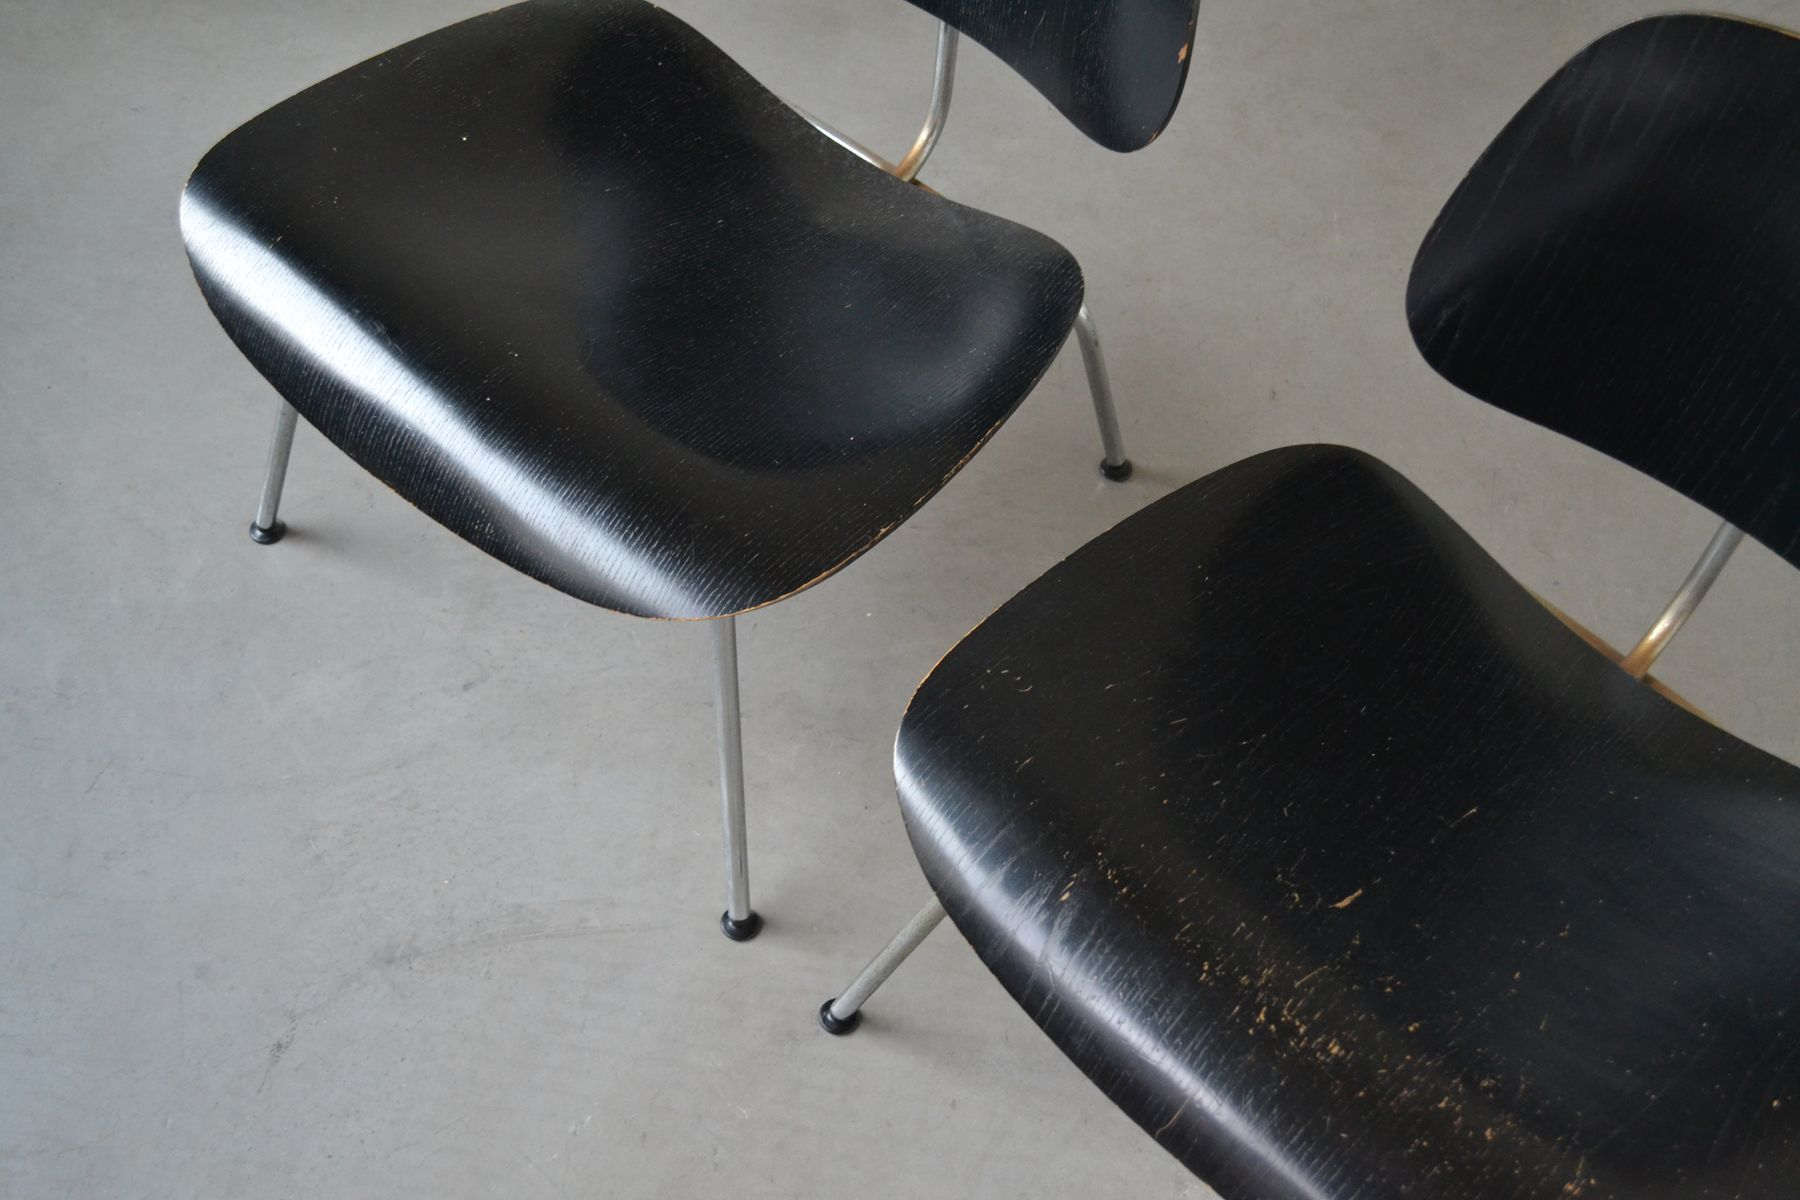 lounge chair metal lcm by charles ray eames for herman miller 1950s set of 2 bei pamono kaufen. Black Bedroom Furniture Sets. Home Design Ideas